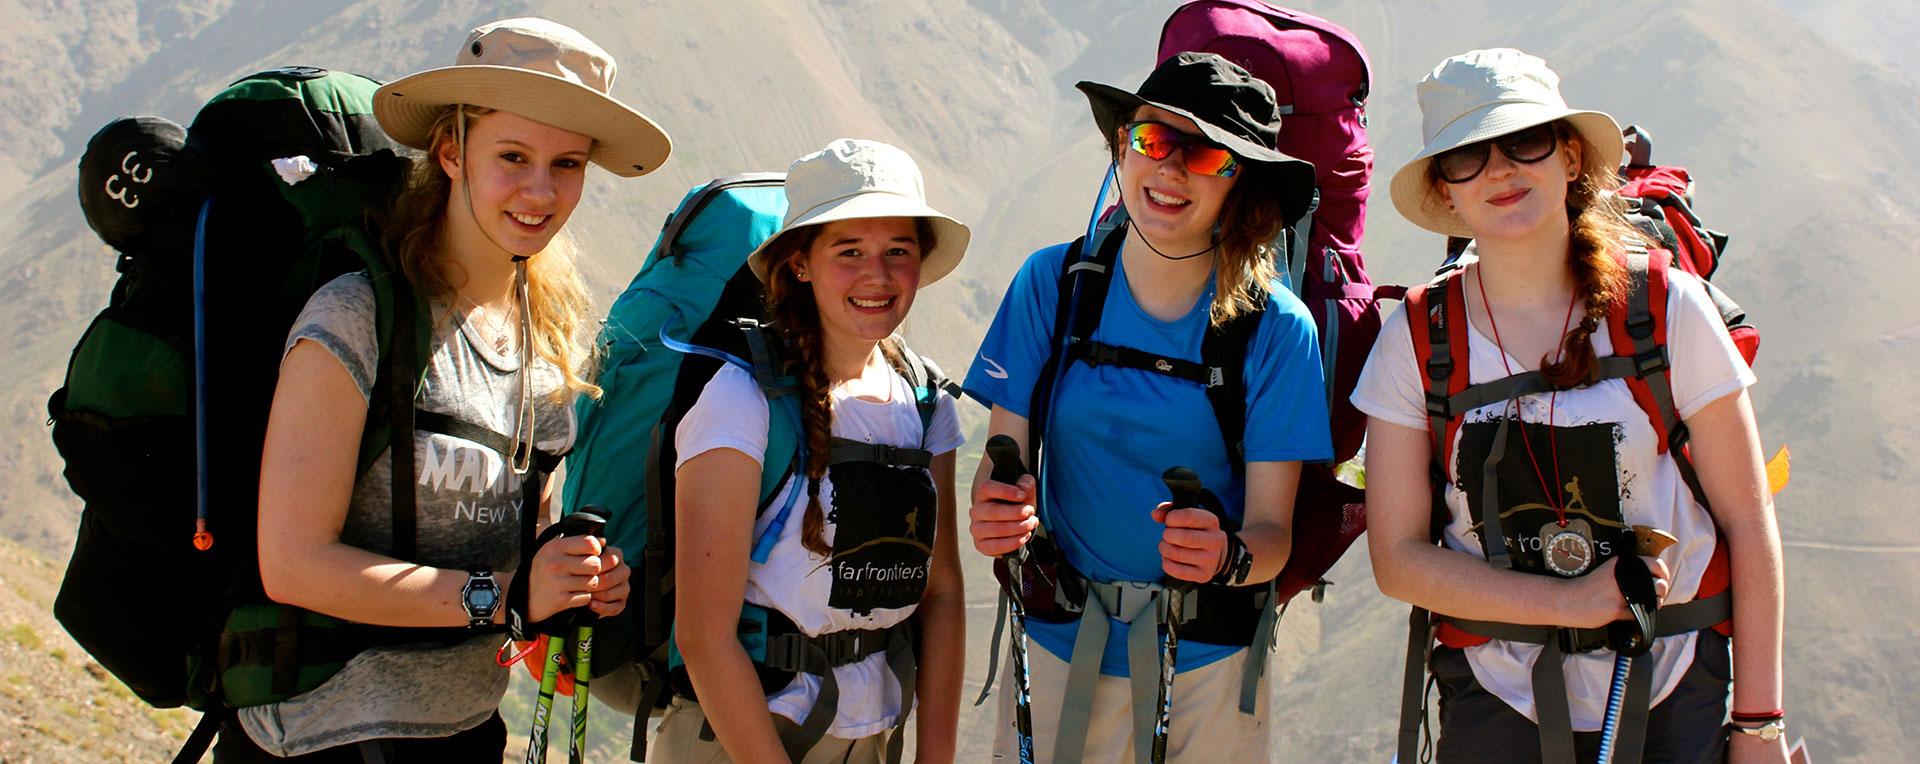 Morocco- High Atlas Gold DofE Expedition